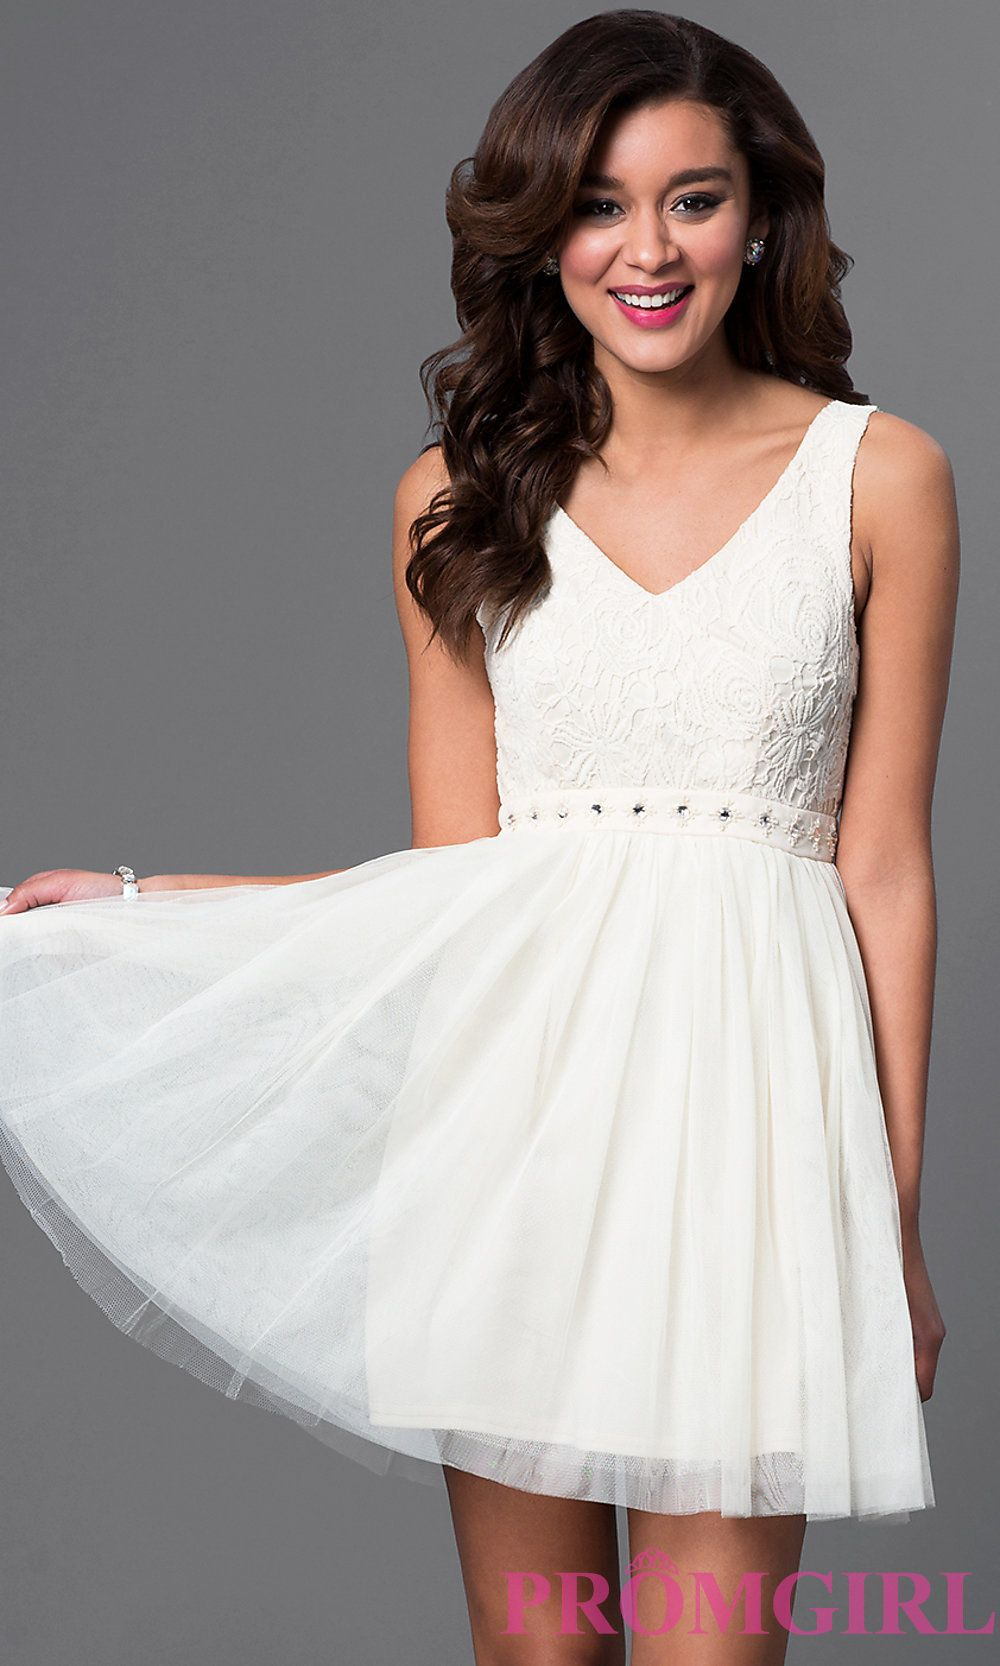 Beige Nude Short Homecoming Party Dress - PromGirl